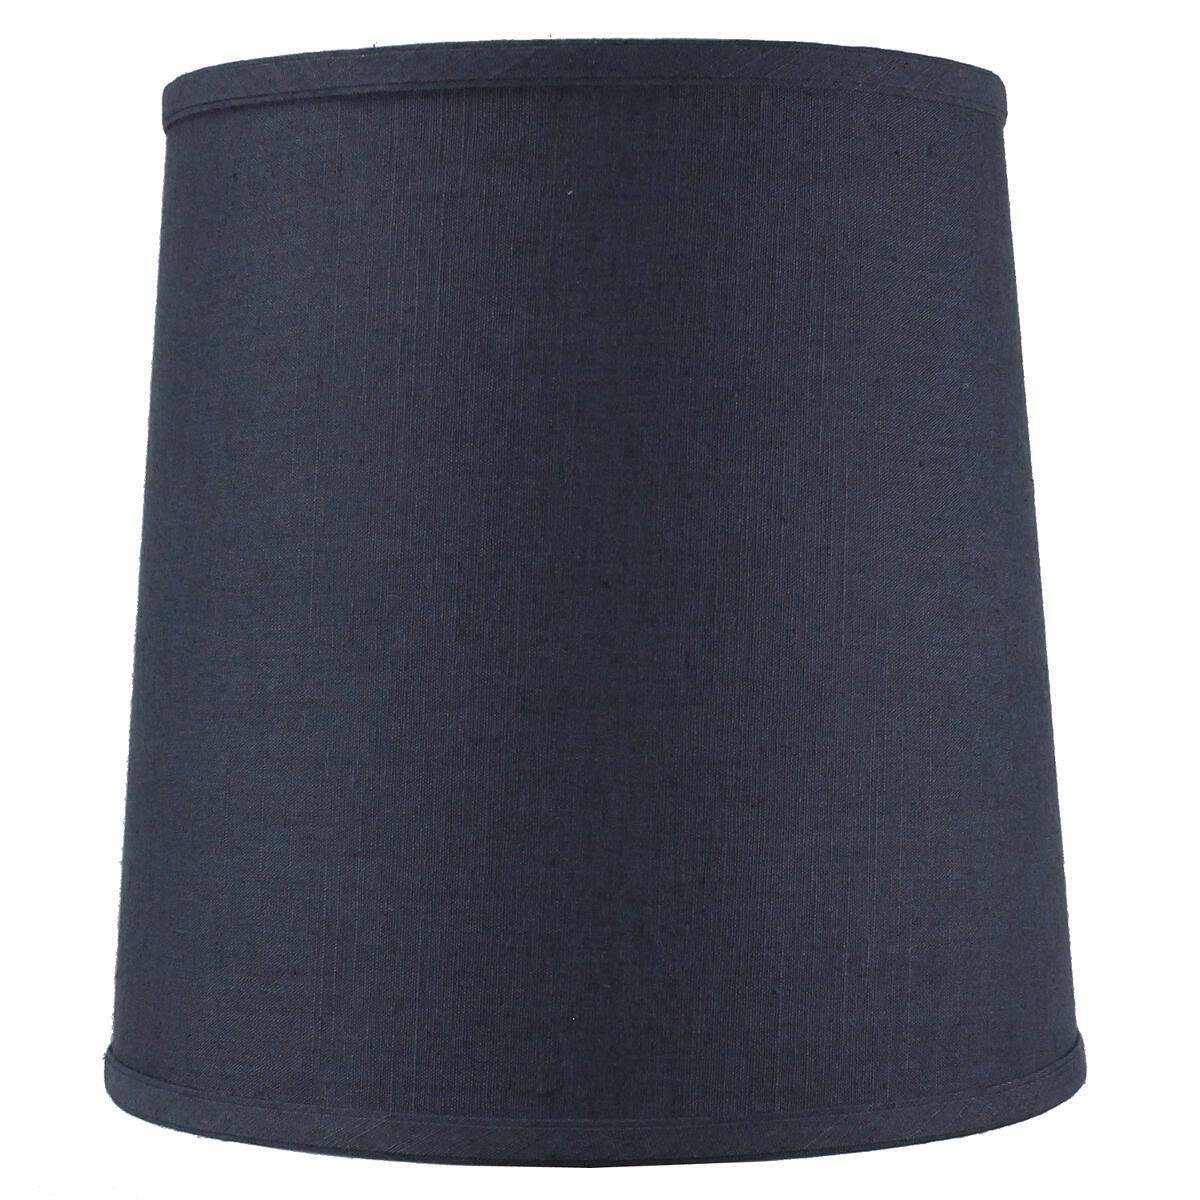 10x12x12 Textured Slate Blue Linen Fabric Drum Lampshade with Brass Spider fitter By Home Concept - Perfect for table and desk lamps - Medium, Blue